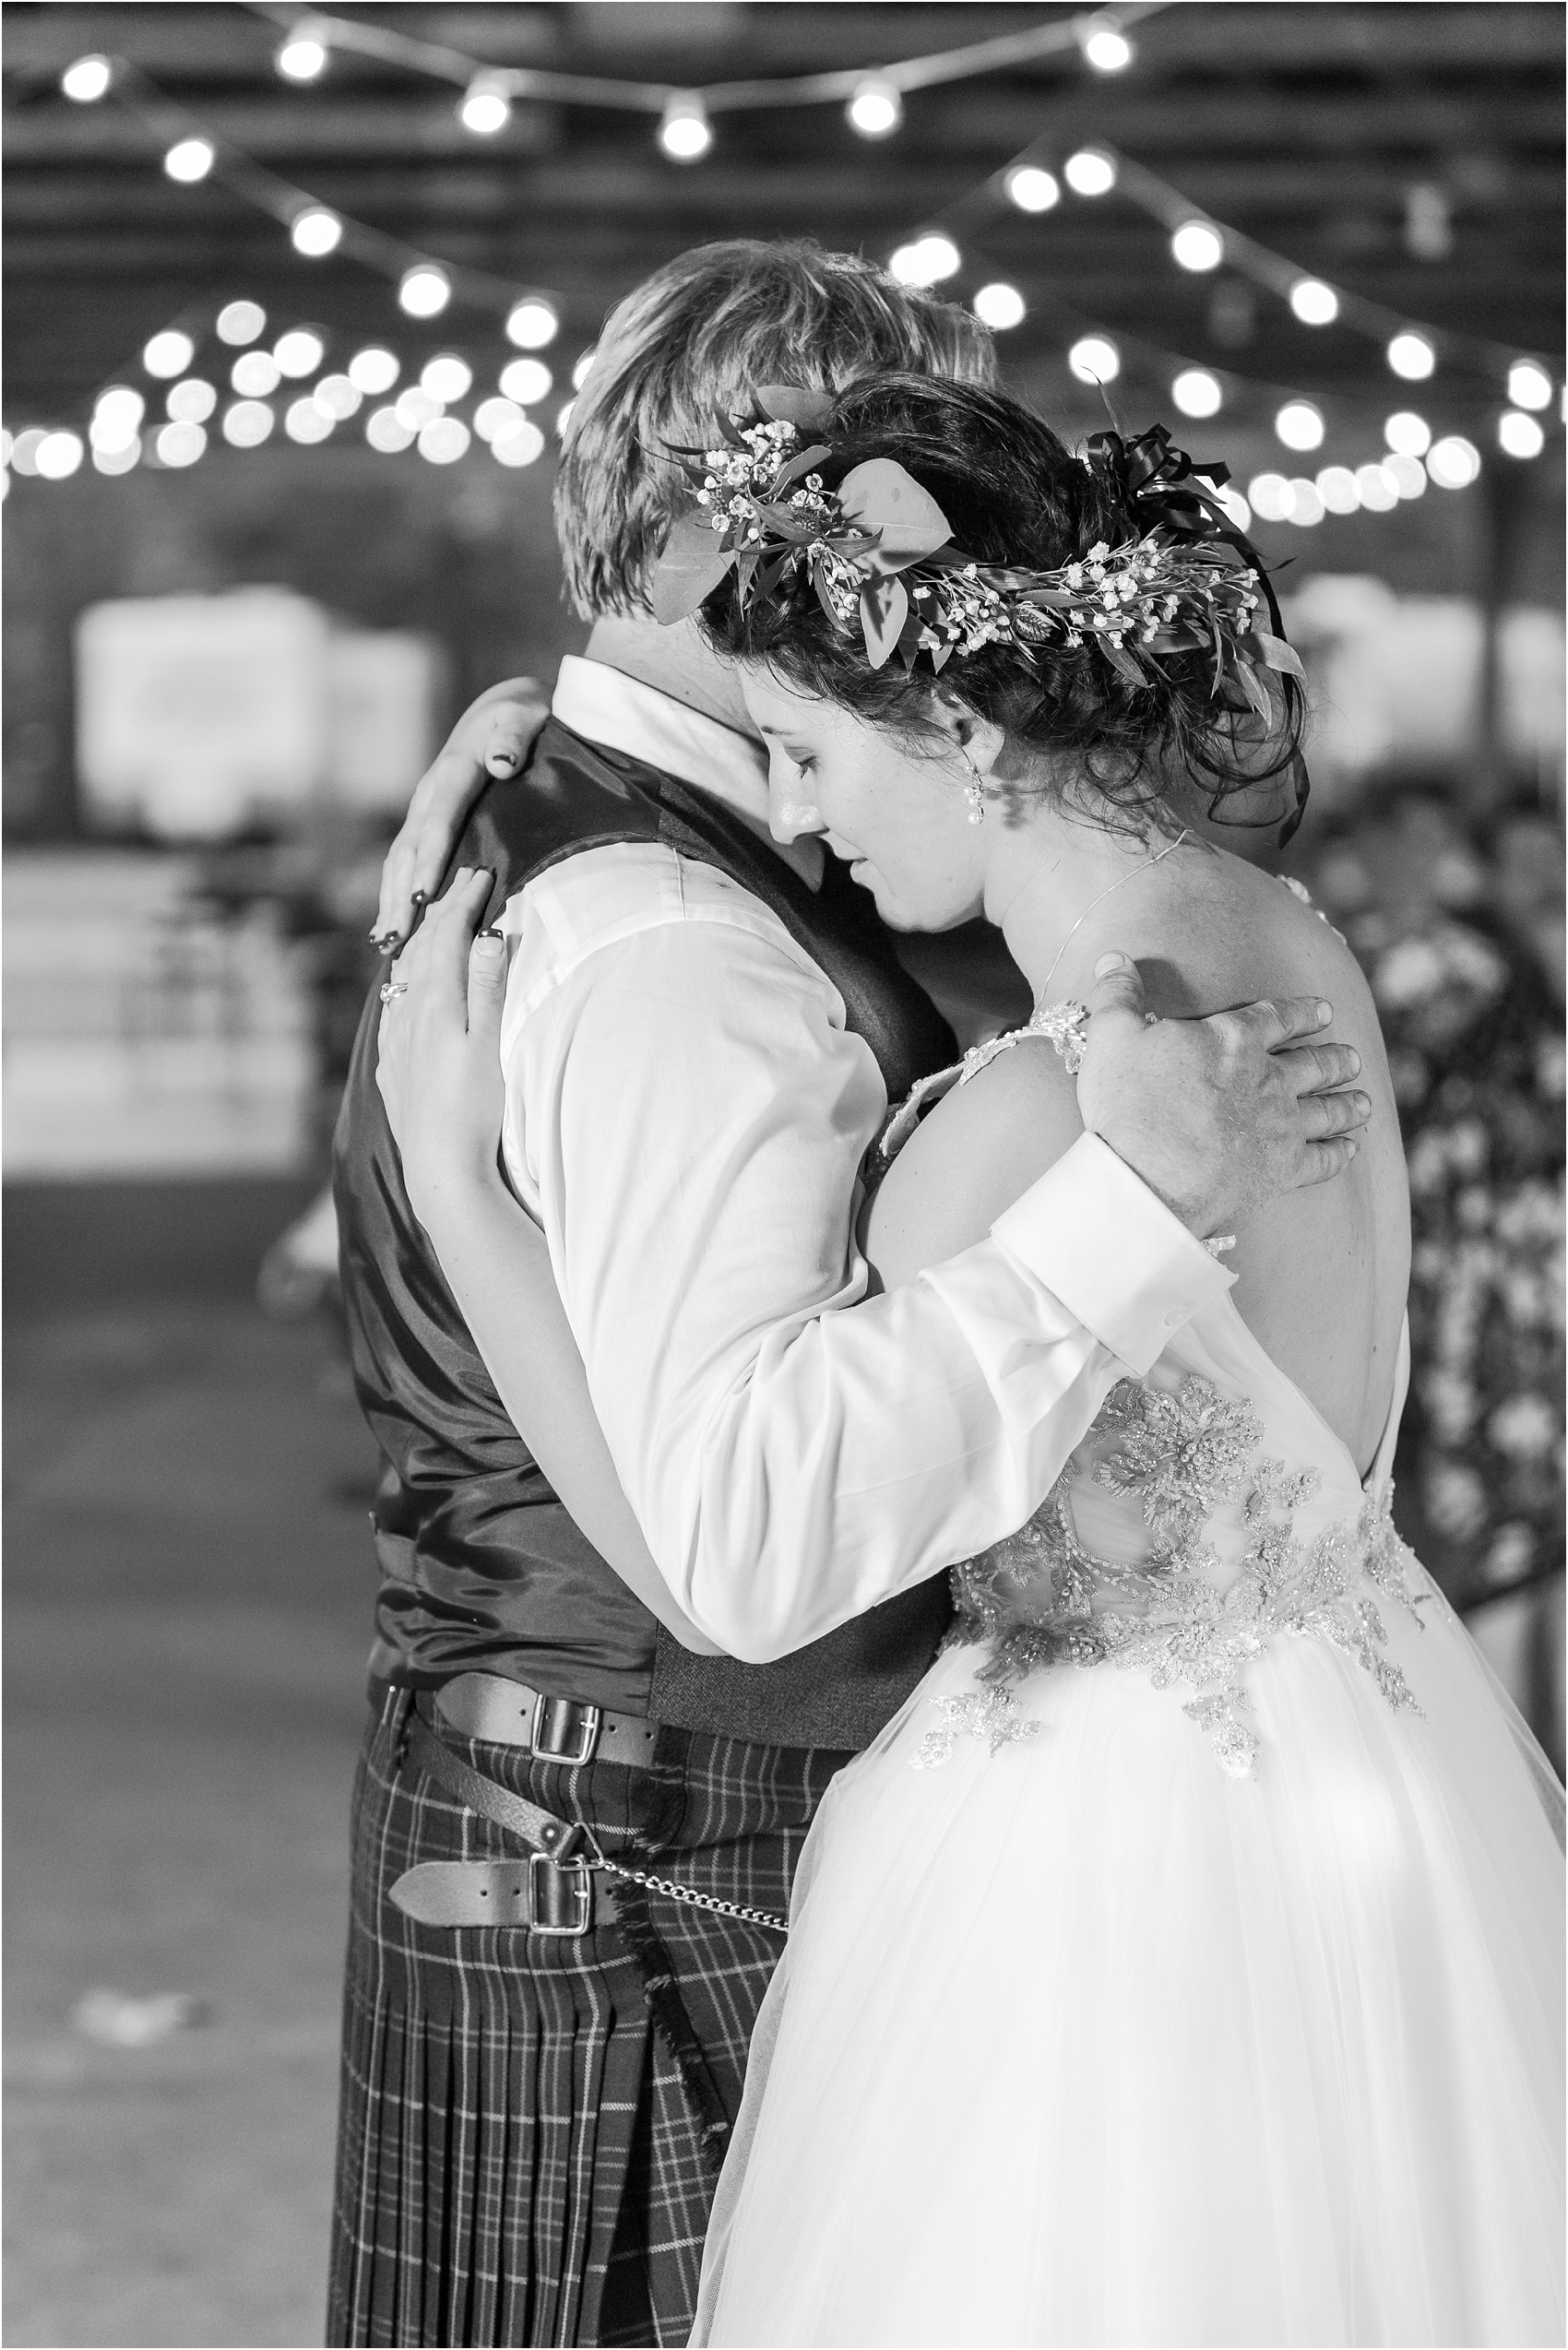 scottish-inspired-wedding-photos-in-the-country-in-port-sanilac-michigan-by-courtney-carolyn-photography_0053.jpg